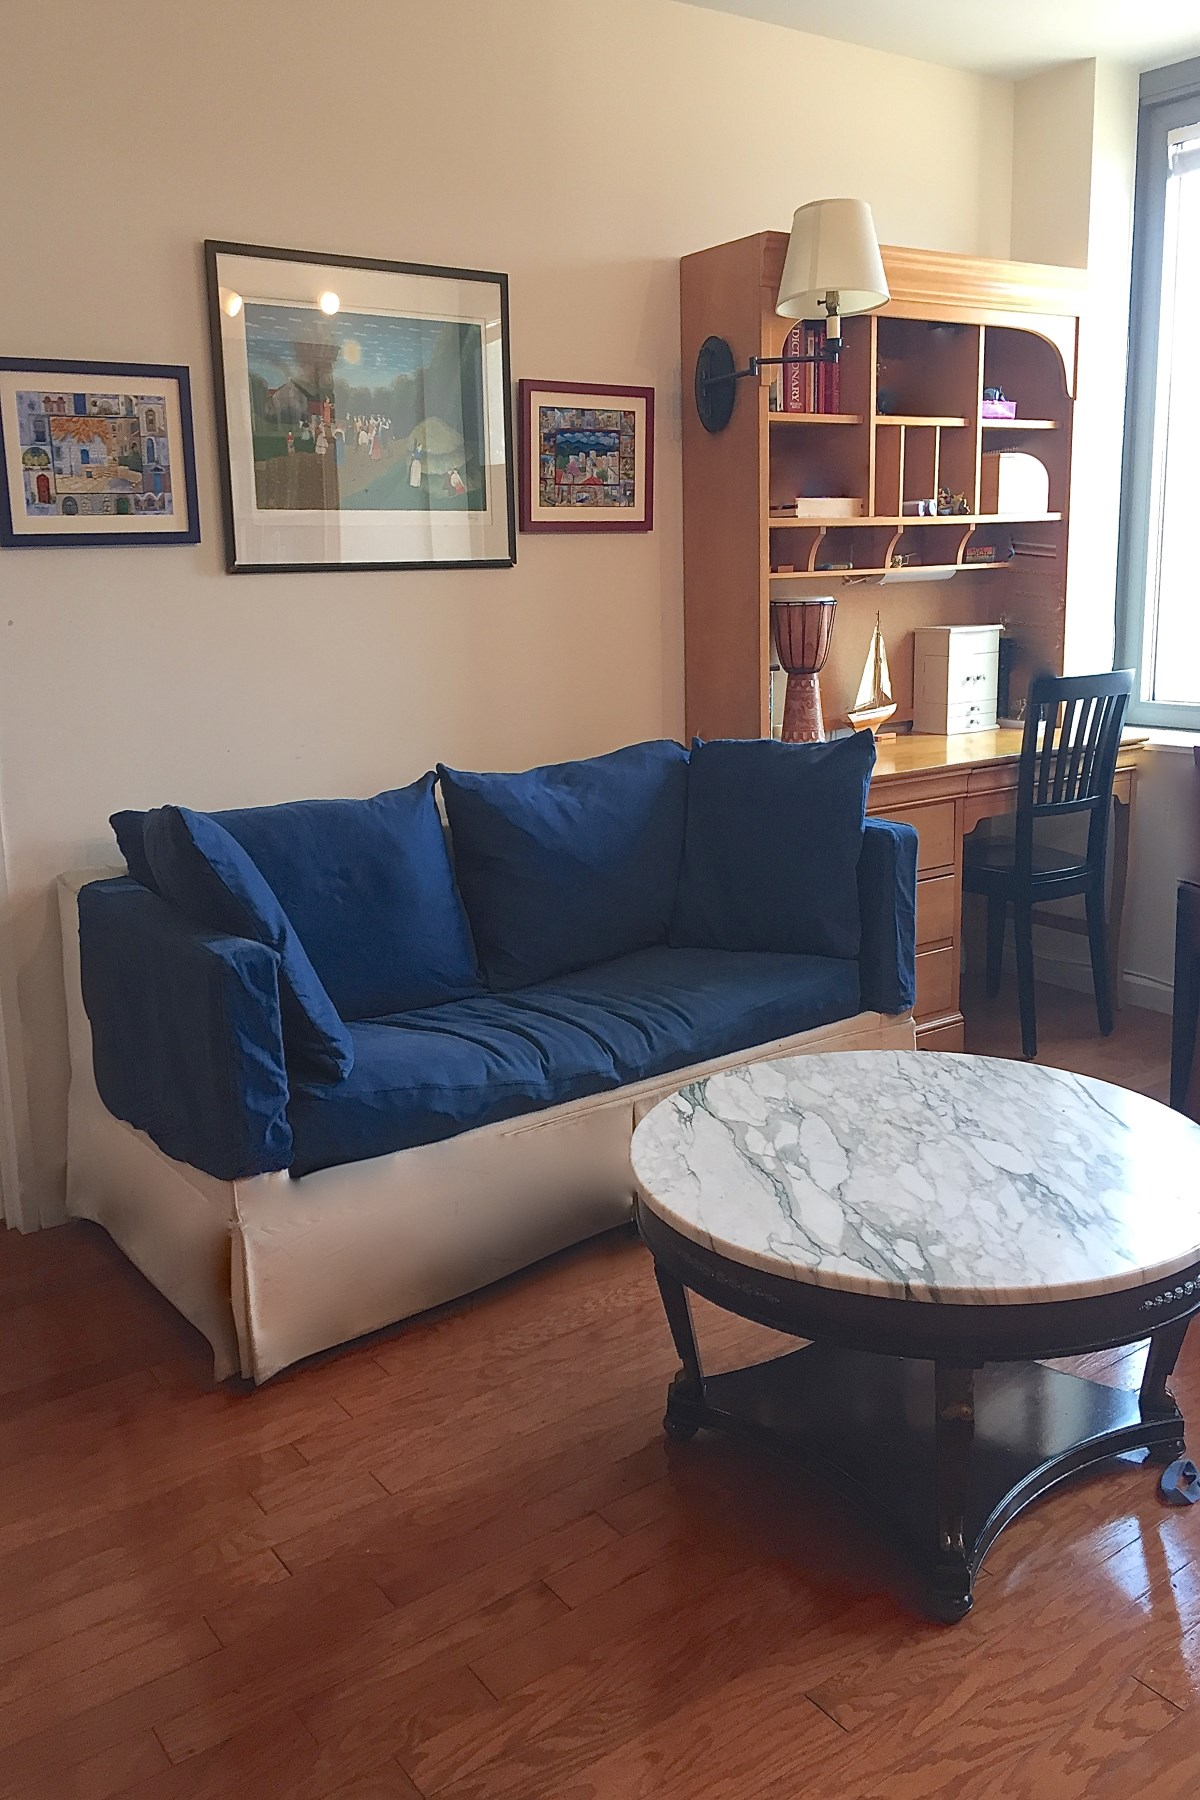 Condominium for Sale at Perfect Proportions 455 Main Street Apt 3n Roosevelt Island, New York, New York 10044 United States